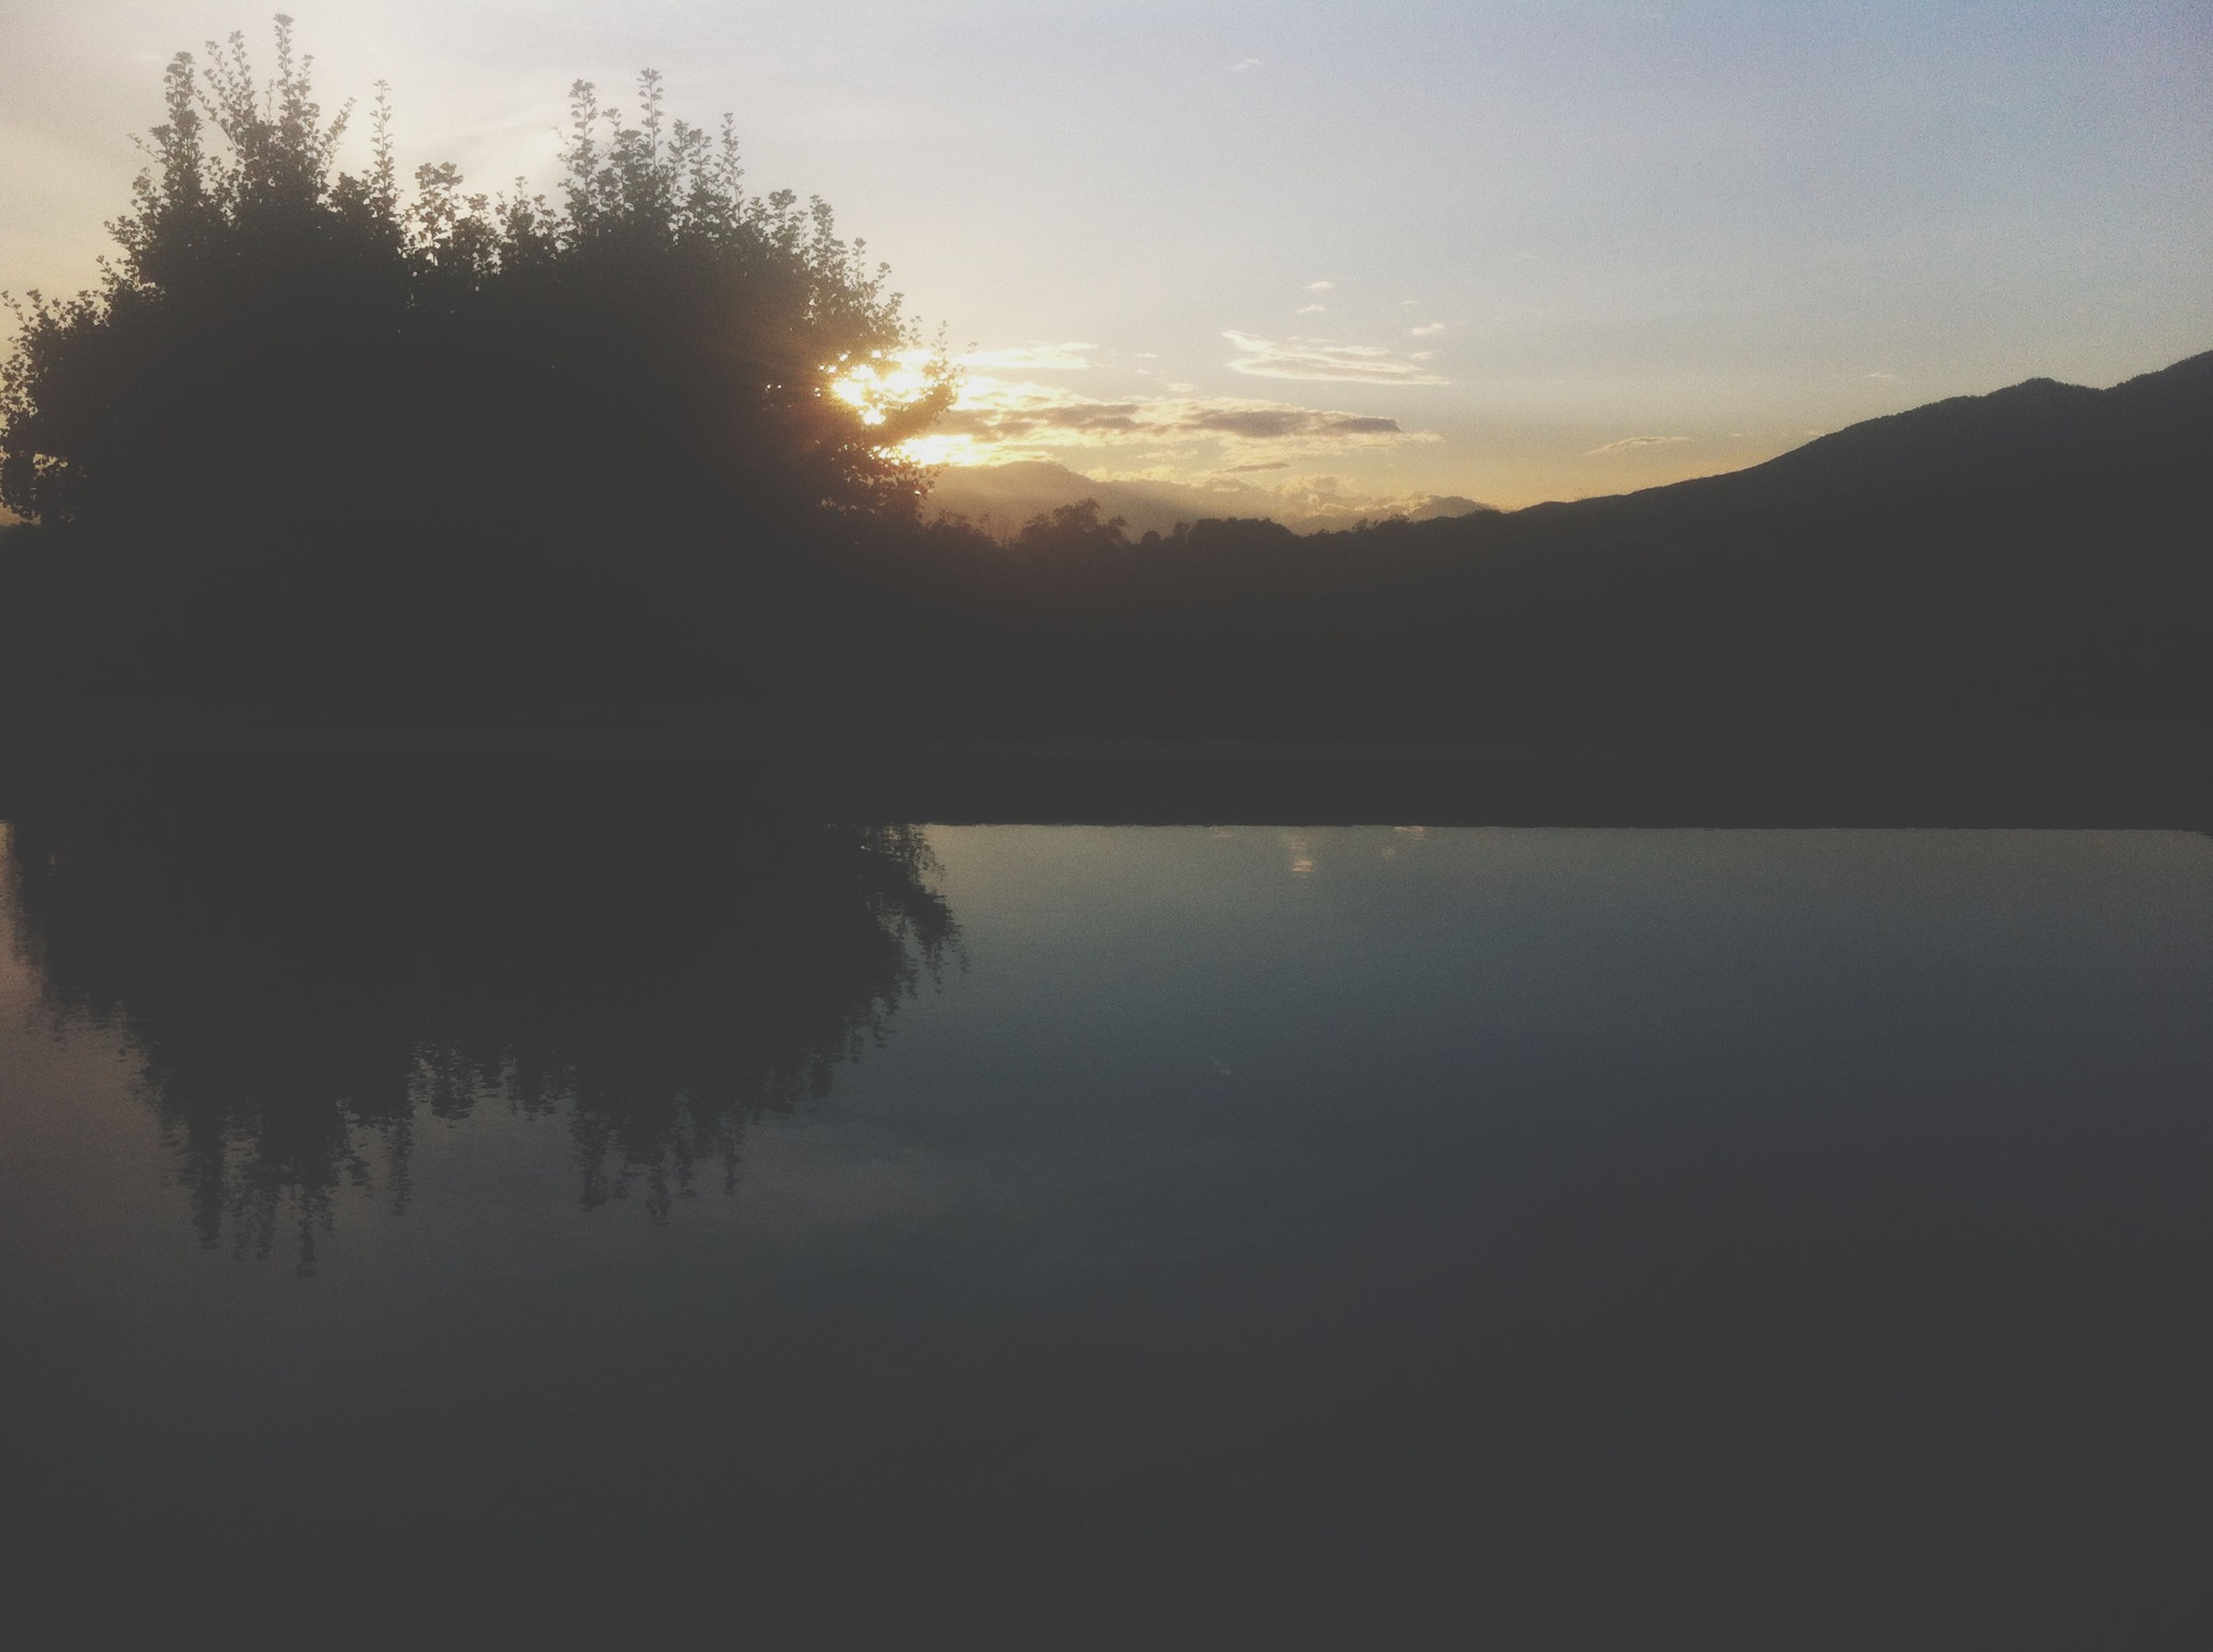 sunset, silhouette, tranquil scene, tranquility, tree, scenics, beauty in nature, water, reflection, lake, sky, nature, idyllic, sun, mountain, outdoors, no people, calm, clear sky, river